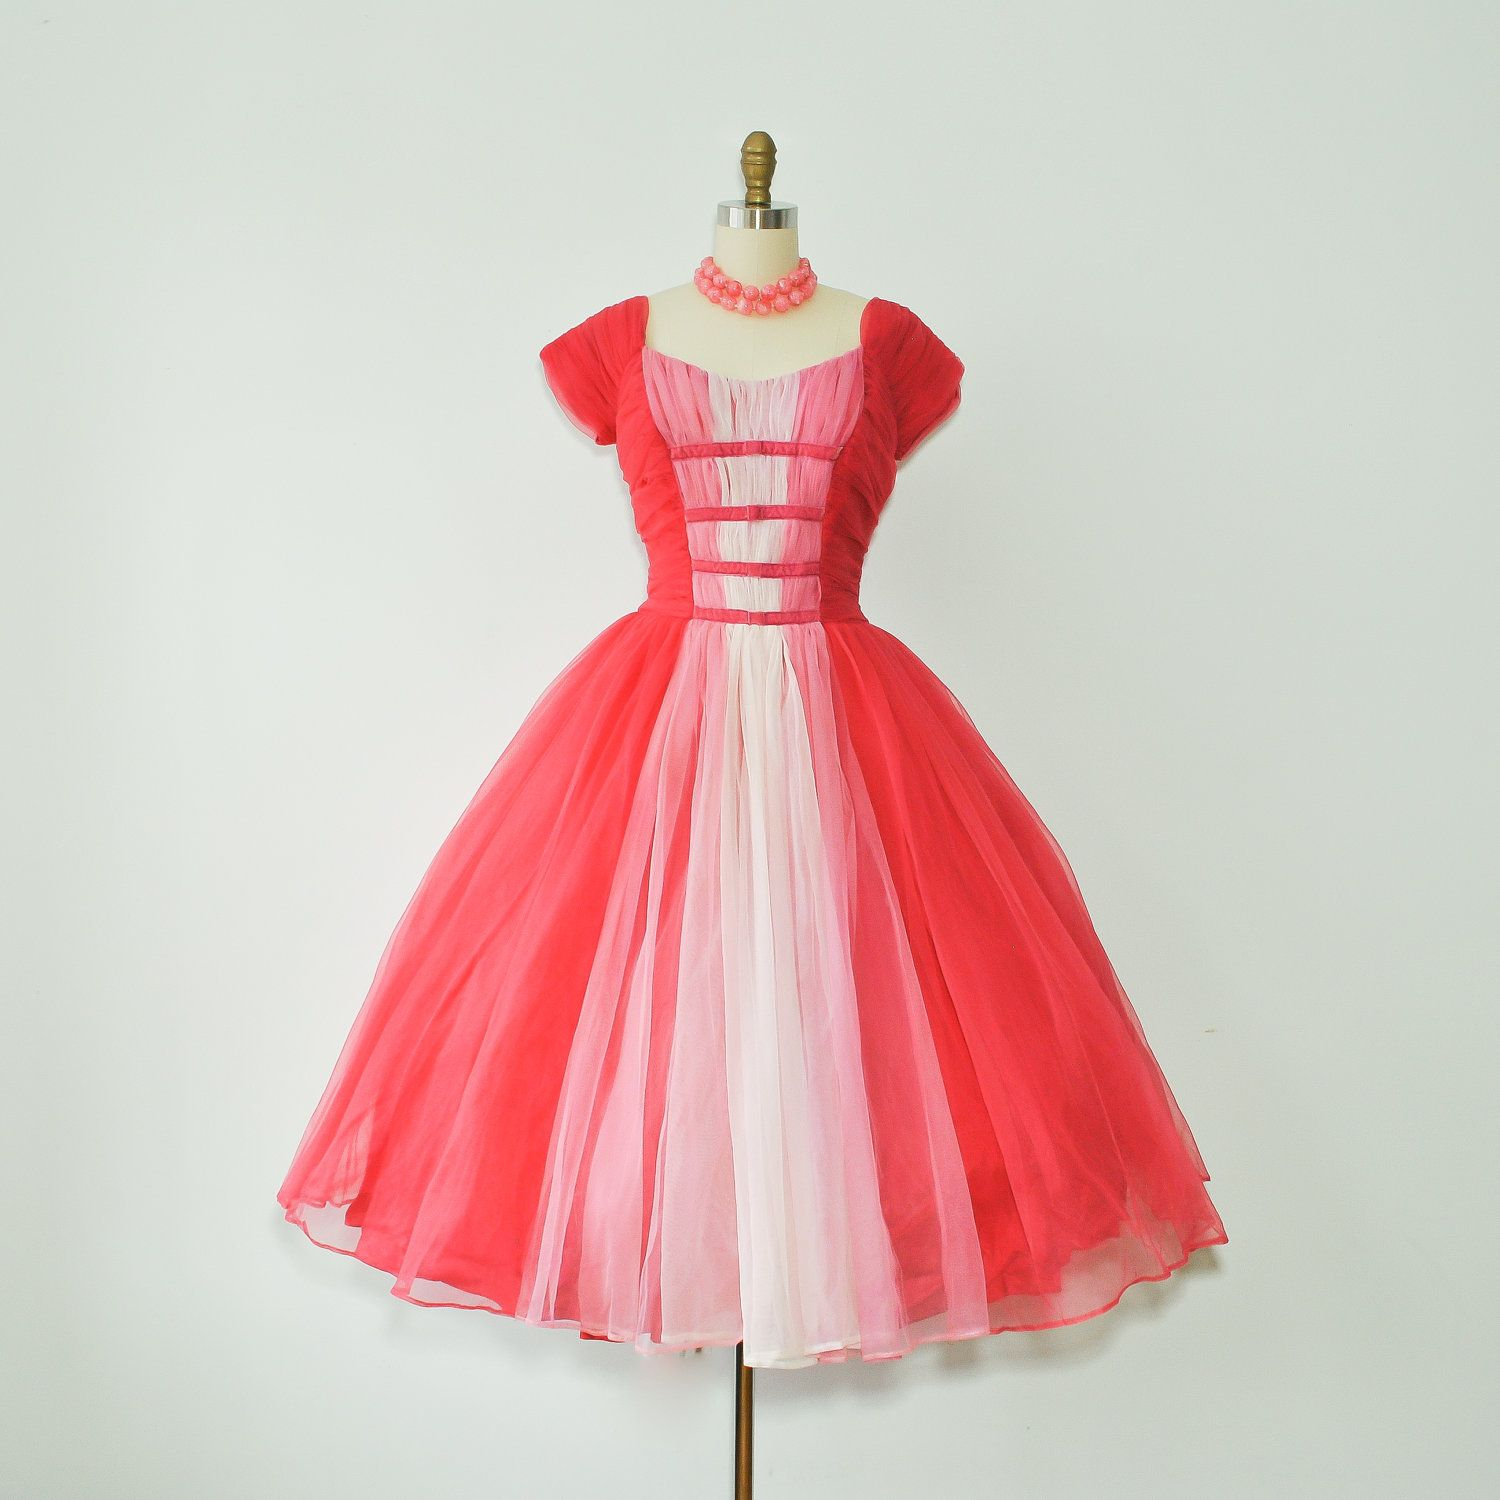 vintage 1950s pink chiffon tulle full skirt party dress / 50s dress ...